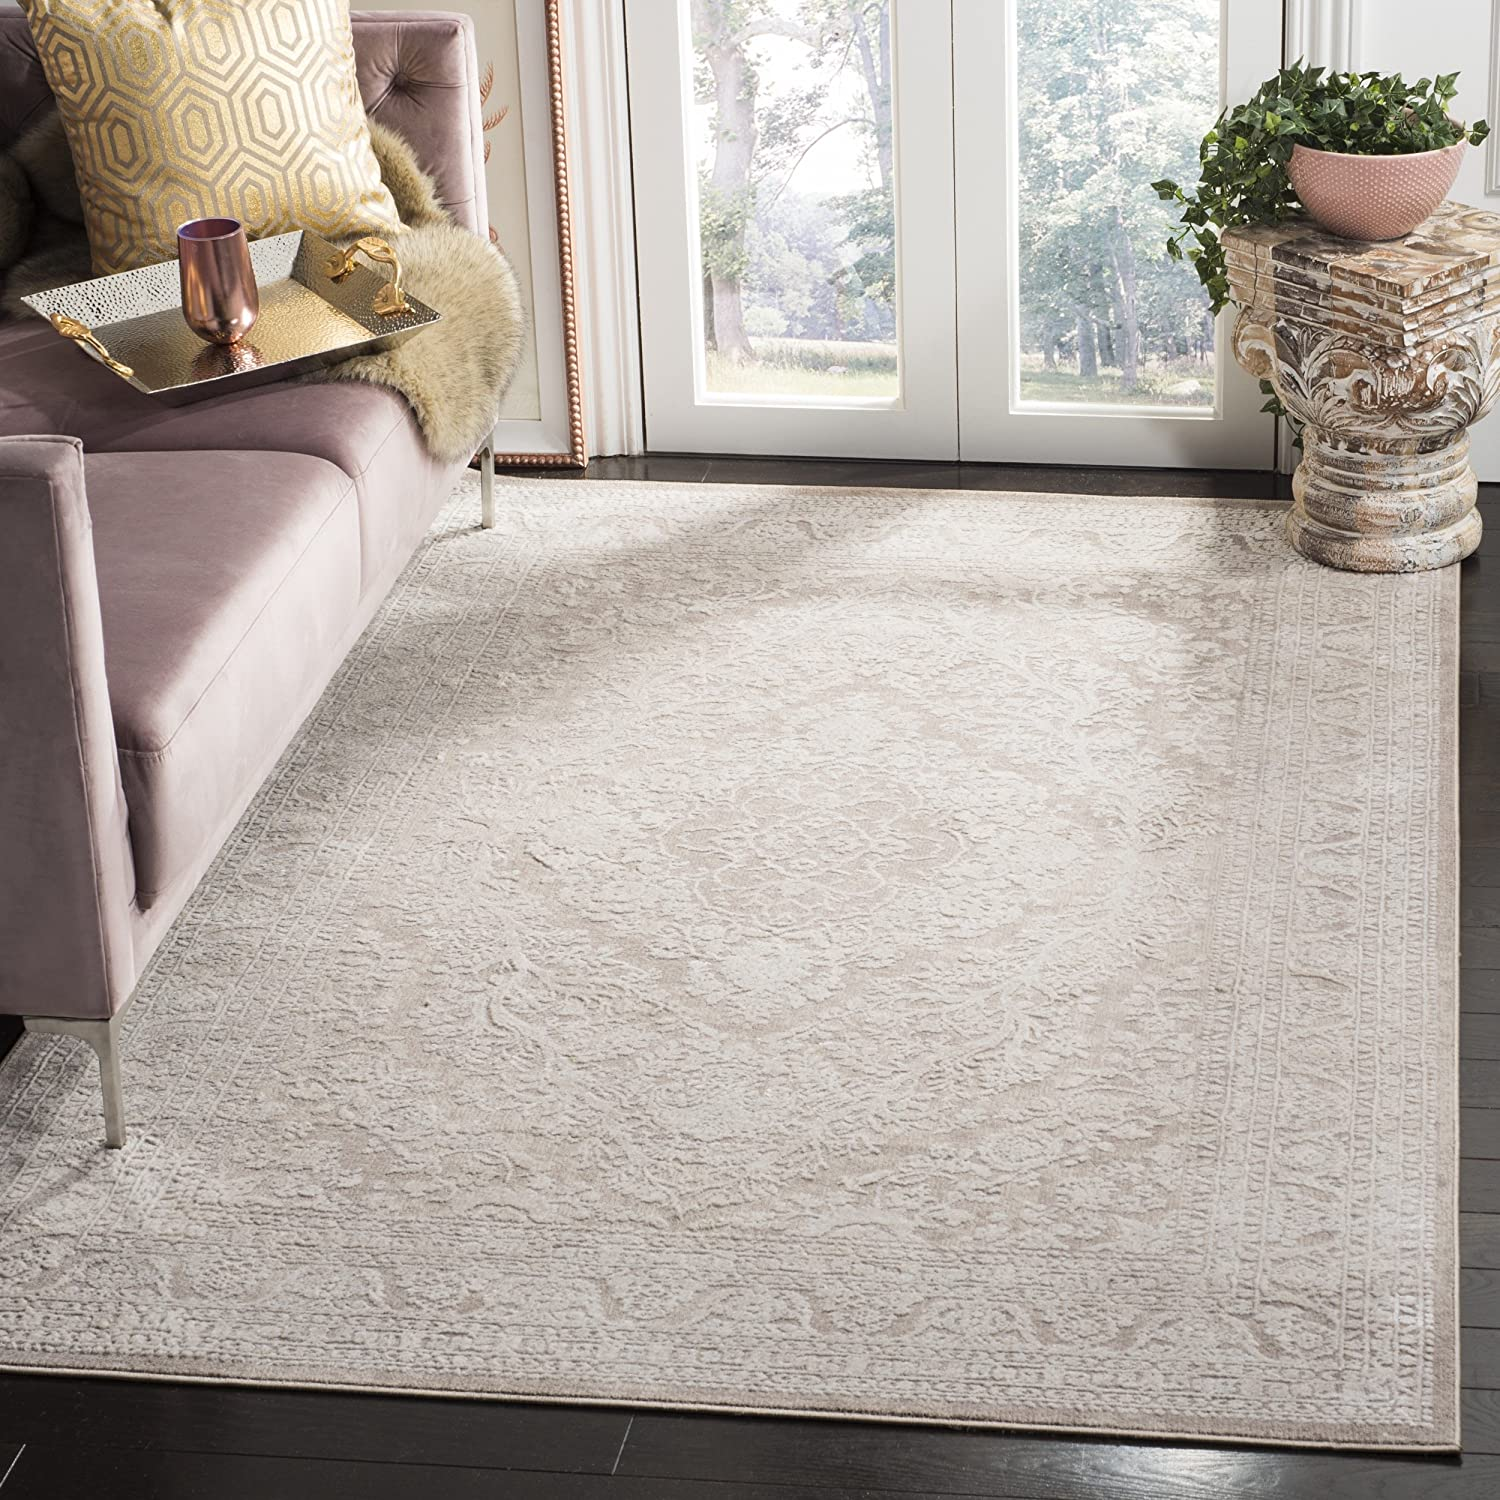 Safavieh Reflection Collection RFT668A Beige and Cream Area Rug (8' x 10')